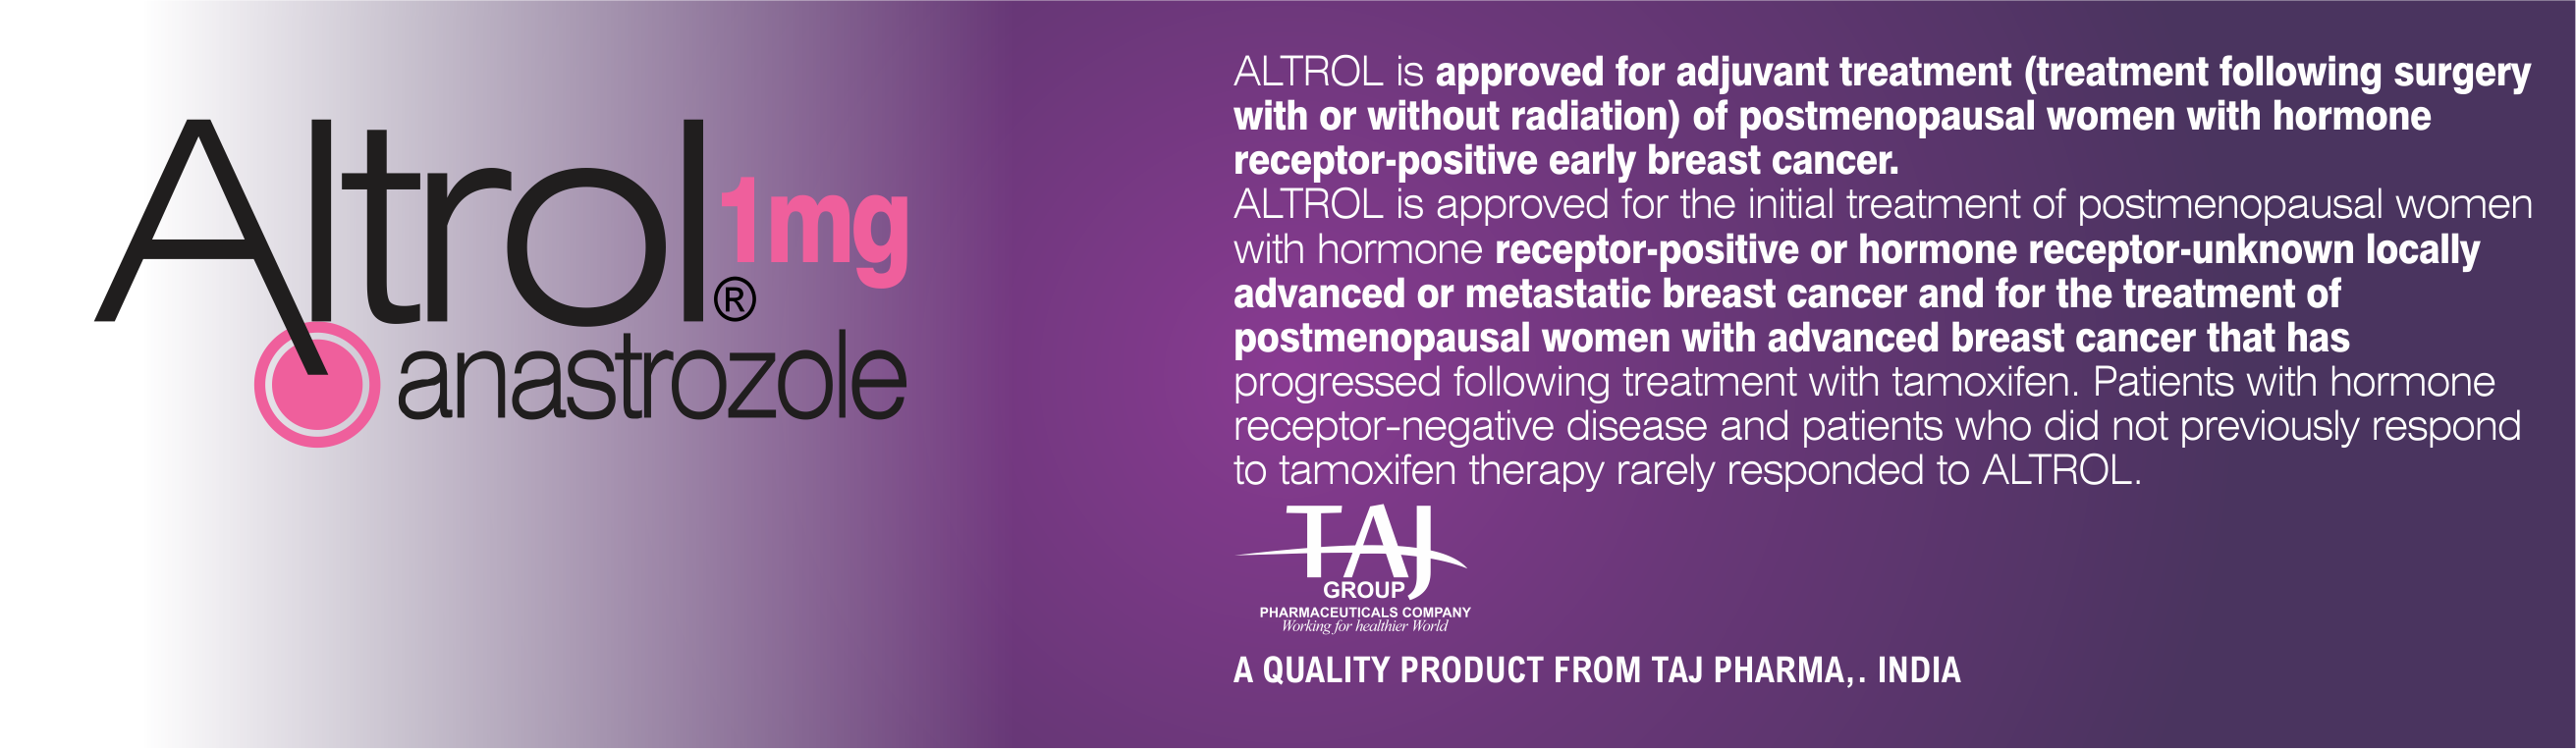 Order anastrozole.doc -  Only For Residents Of The India Taj Pharmaceuticals Limited Medicines Help To Treat And Prevent A Range Of Conditions From The Most Common To The Most